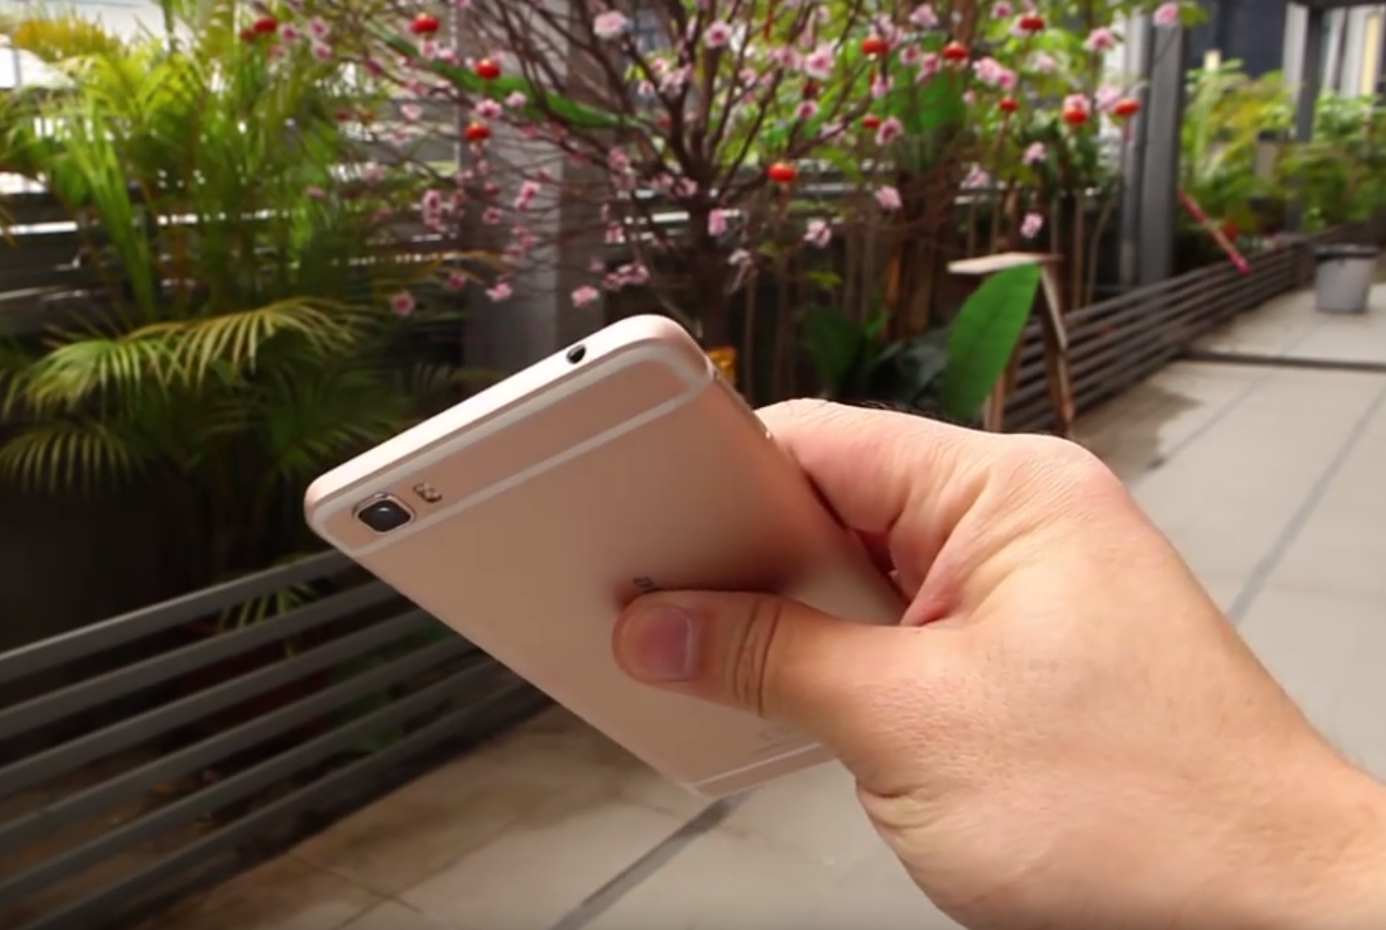 Ulefone Future held in hand, showing back and top of the phone, flowers in the background